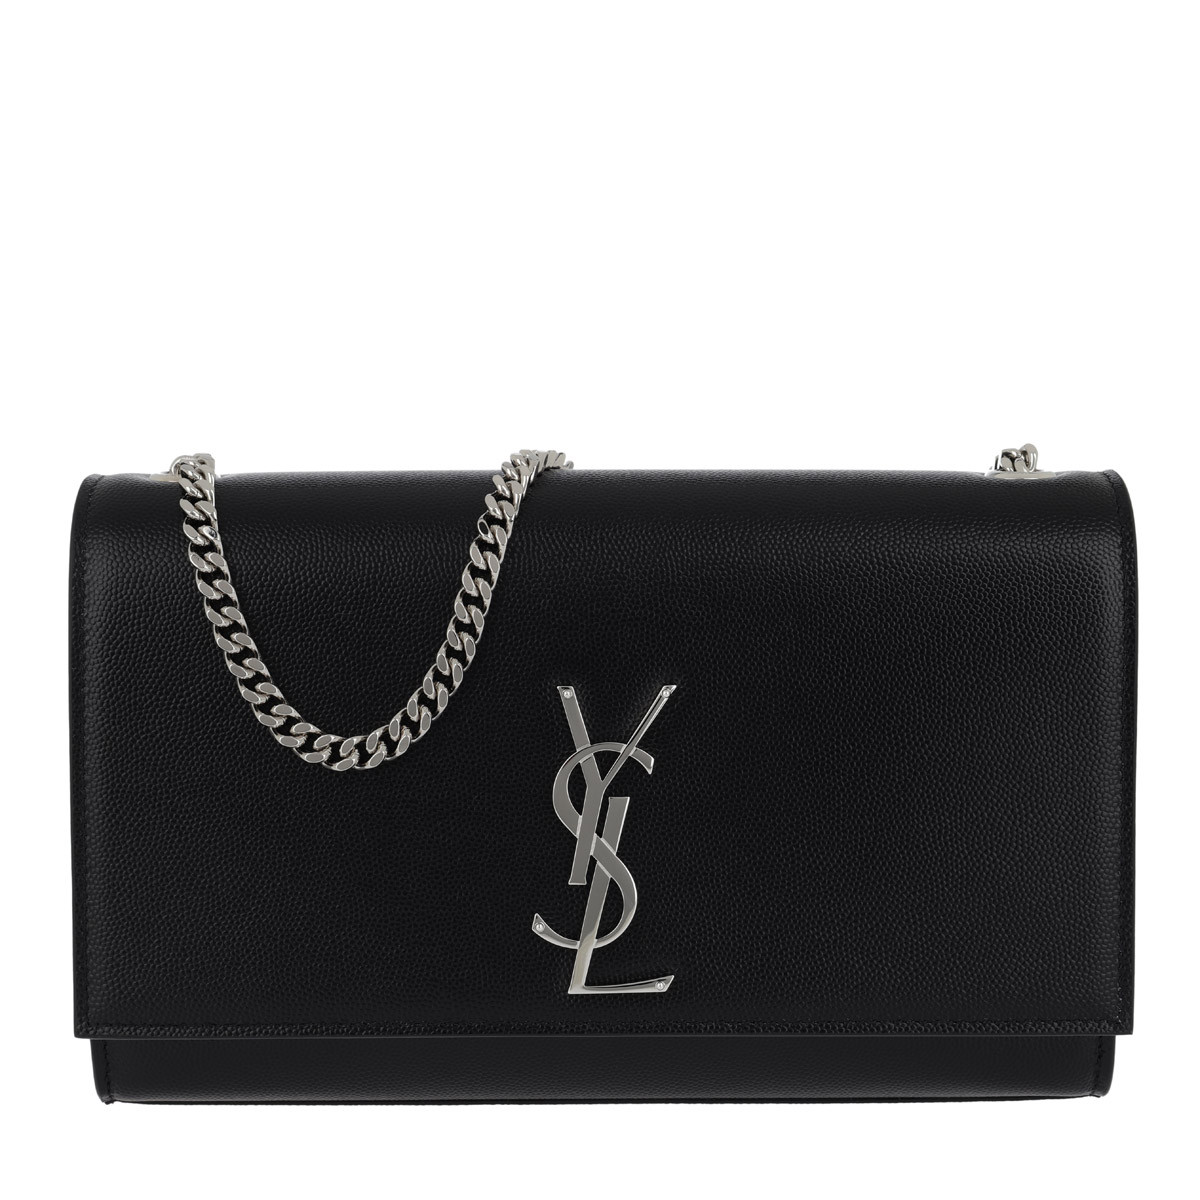 Saint Laurent Umhängetasche - YSL Monogramme Chain Clutch Grain De Poudre Black - in schwarz - für Damen